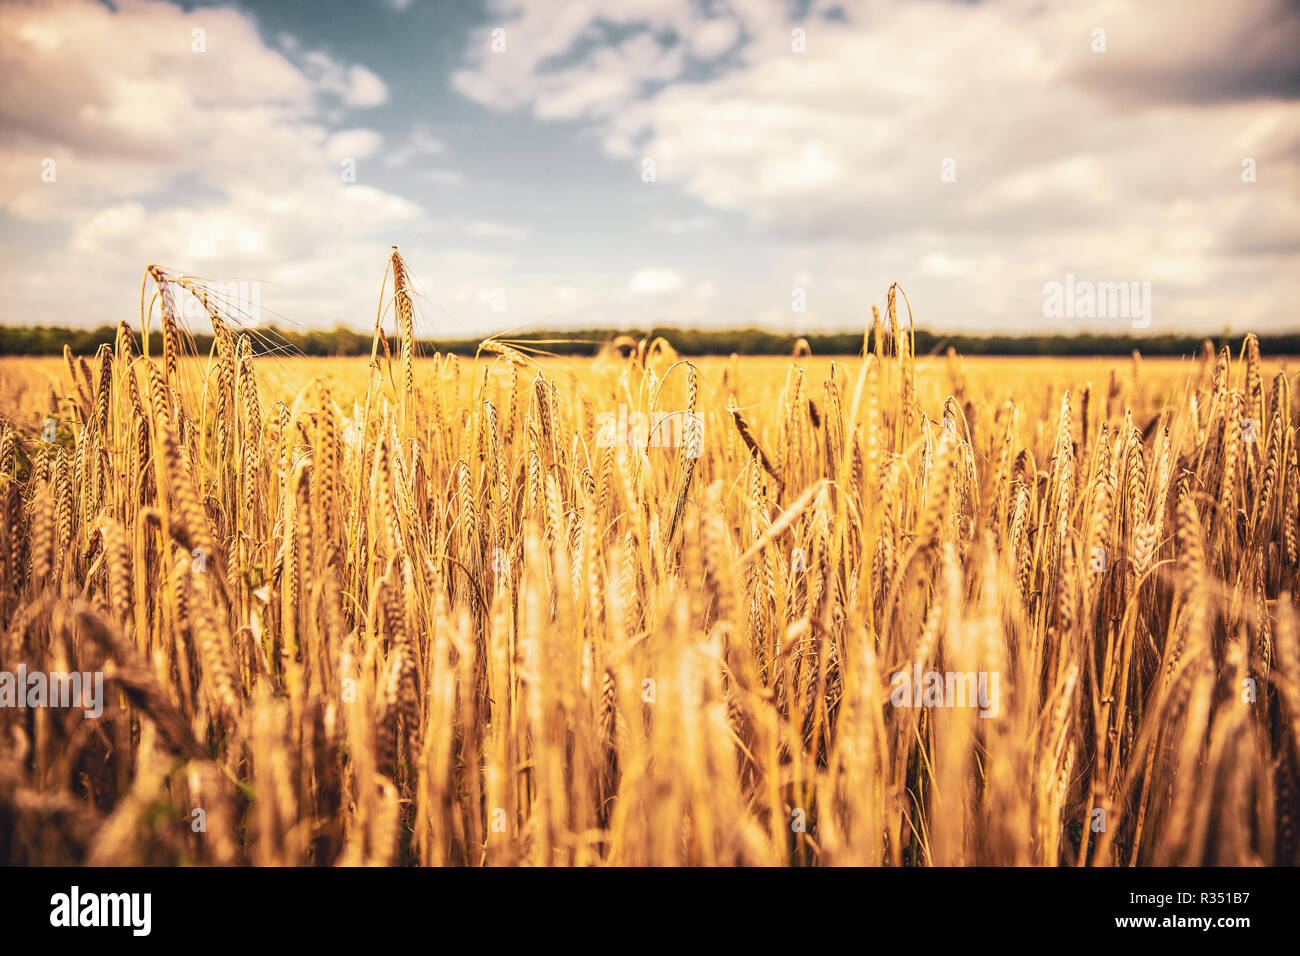 ears of corn in hot summer sunlight - Stock Image